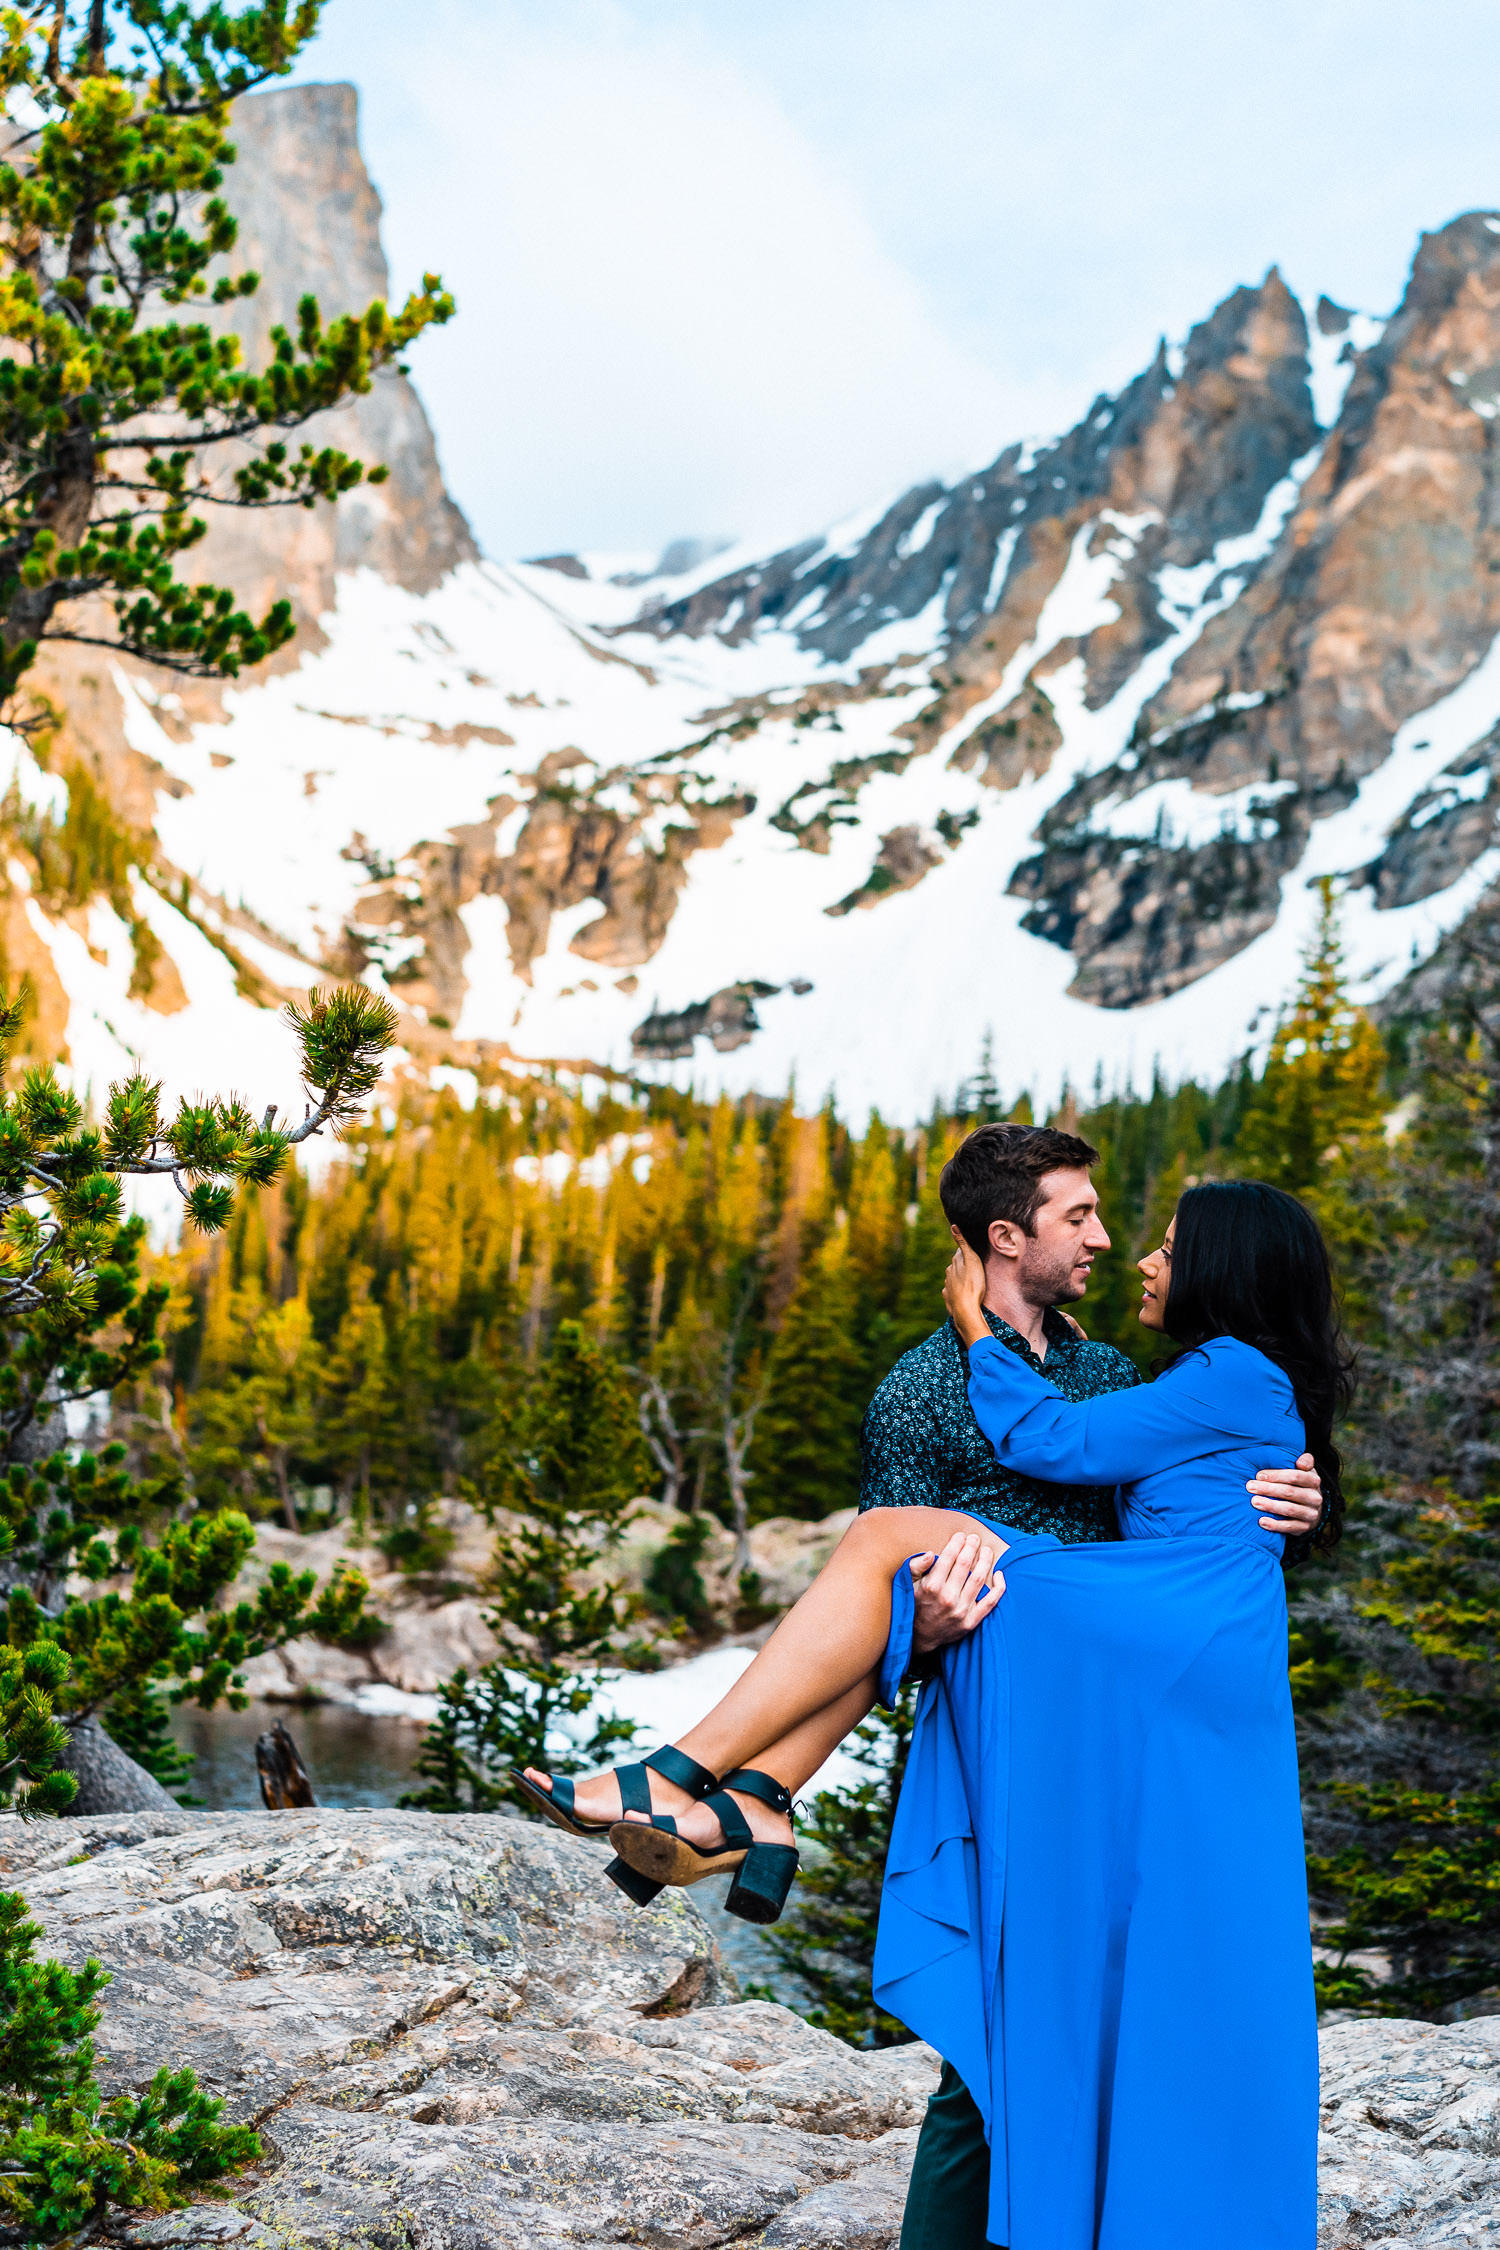 Best_Of_2019_Elopements_Weddings_Colorado-259